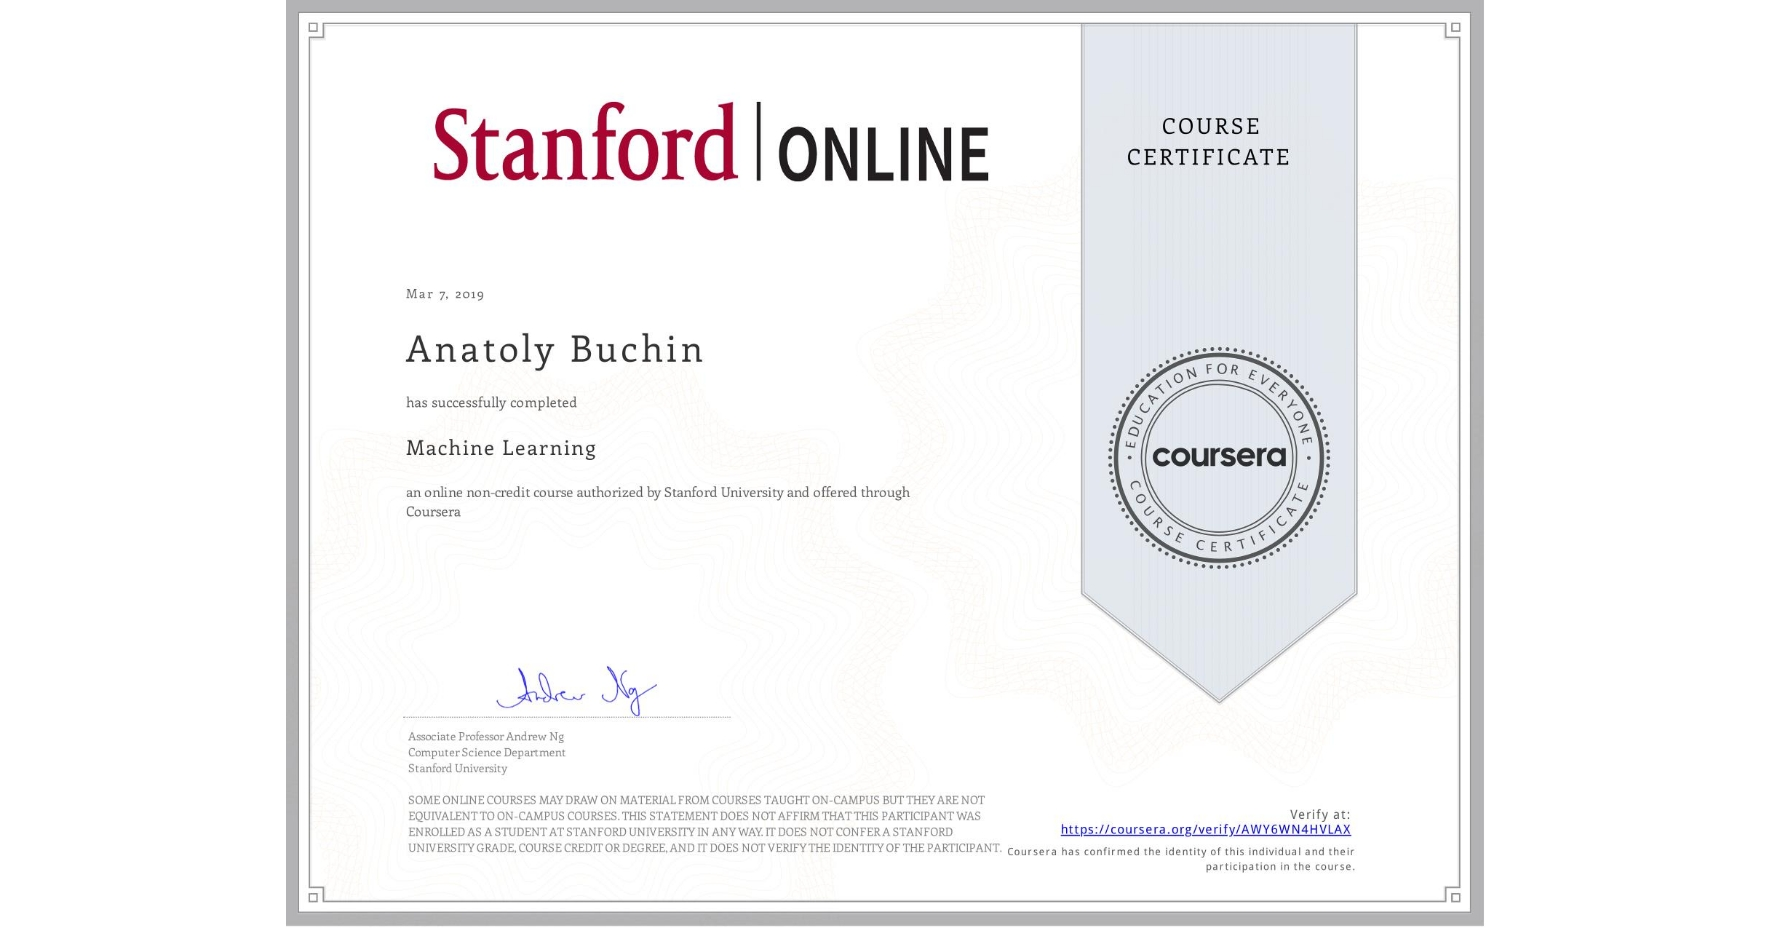 View certificate for Anatoly Buchin, Machine Learning, an online non-credit course authorized by Stanford University and offered through Coursera